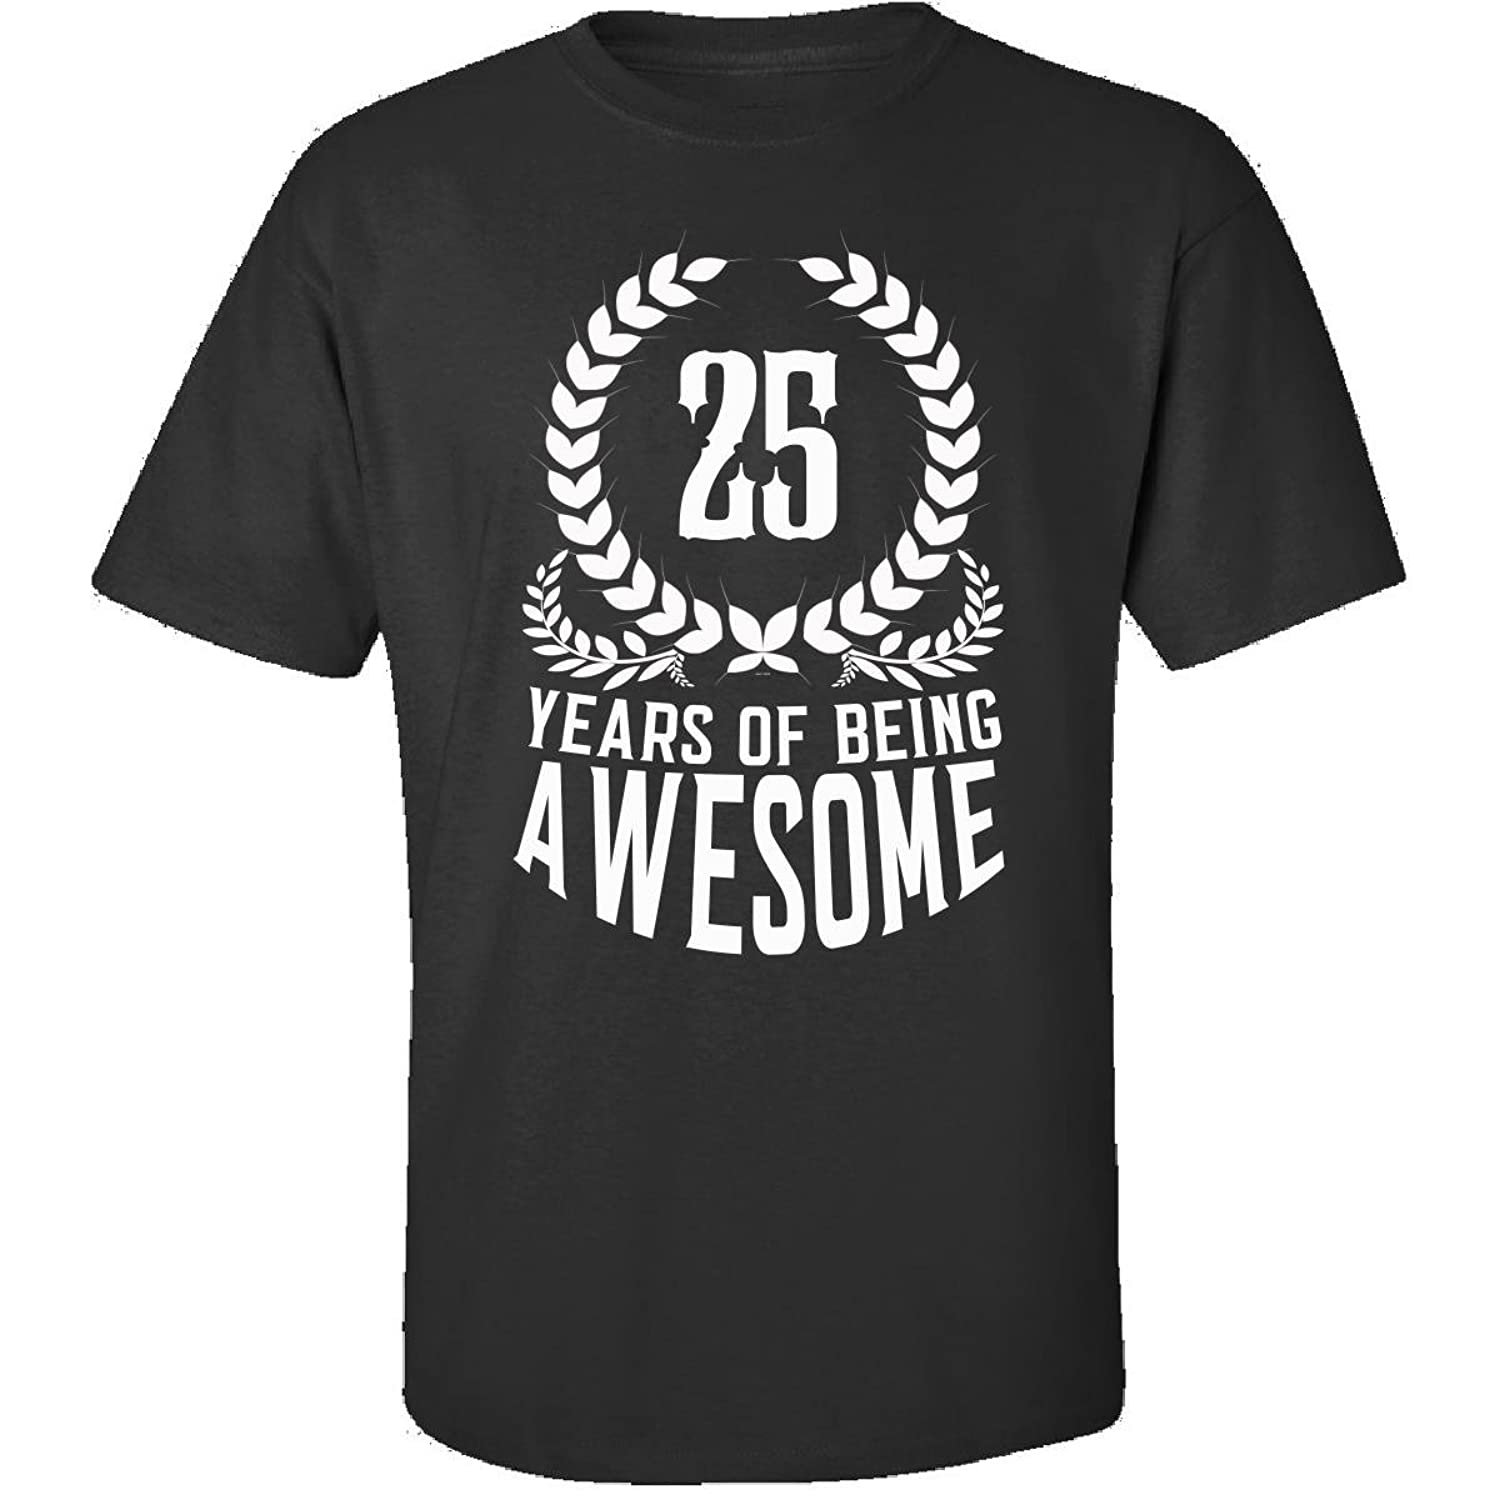 25th Birthday Gift For Men Woman 25 Years Of Being Awesome - Adult Shirt